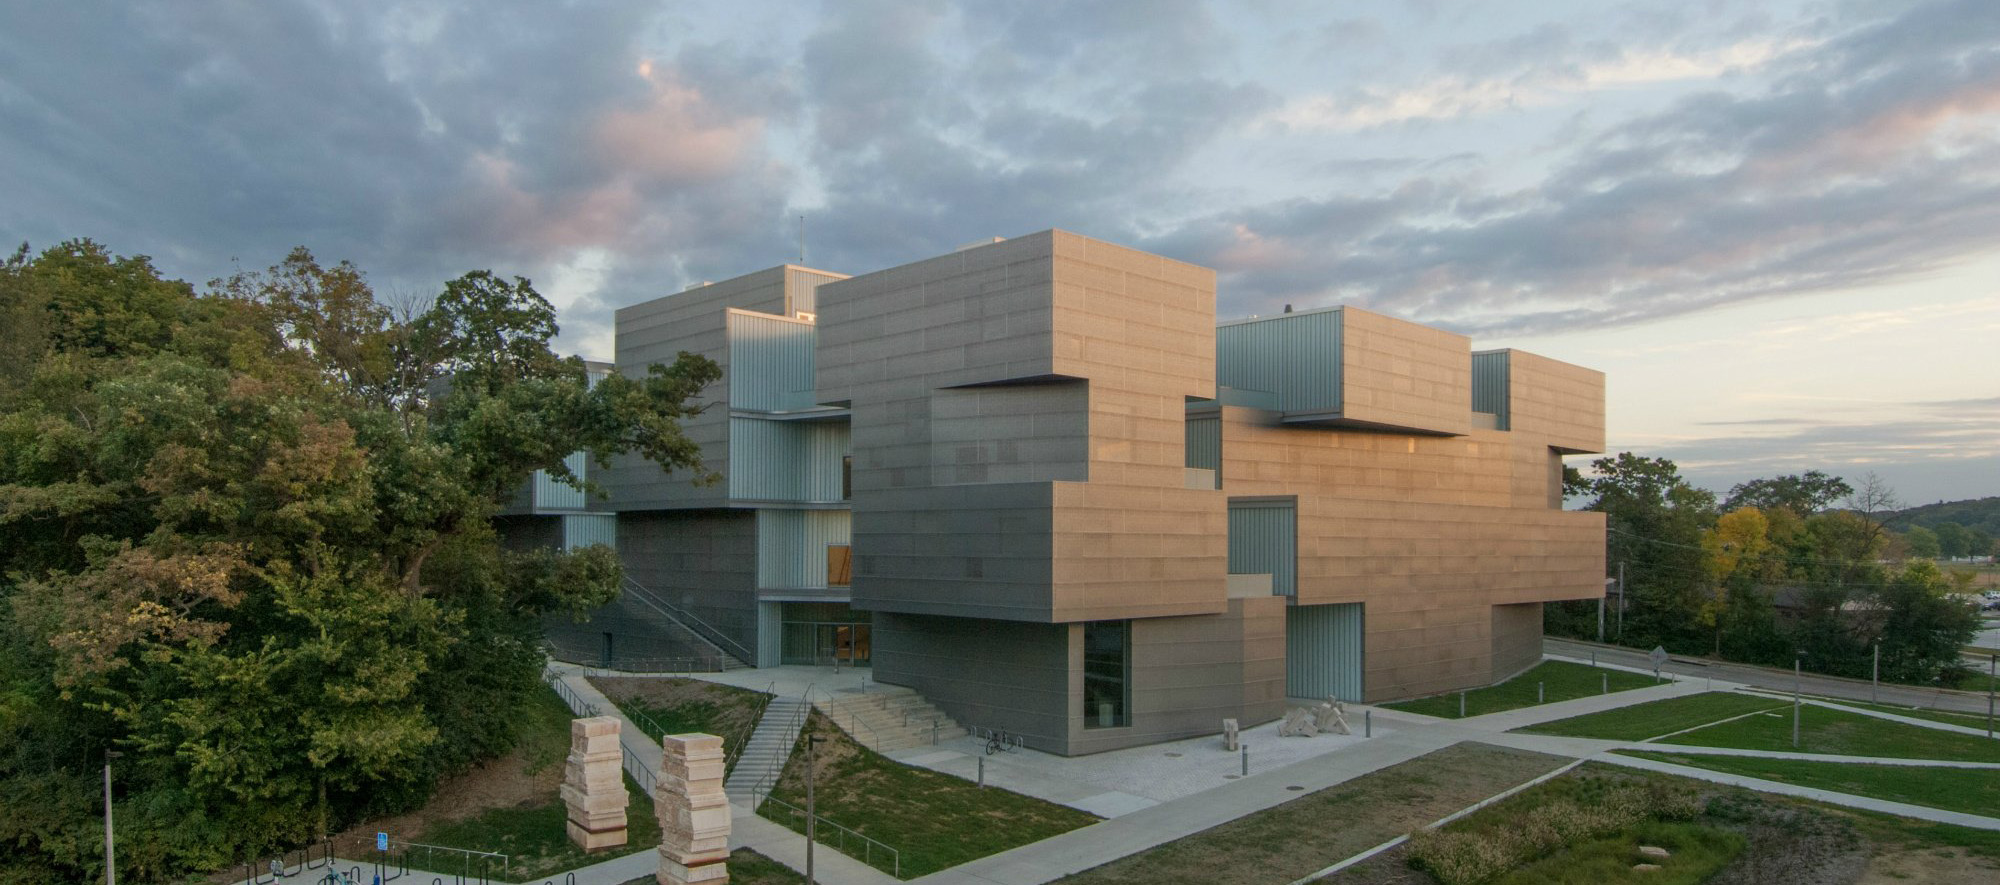 [VIDEO] Visual Arts Building, University Of Iowa: Steven Holl Architects